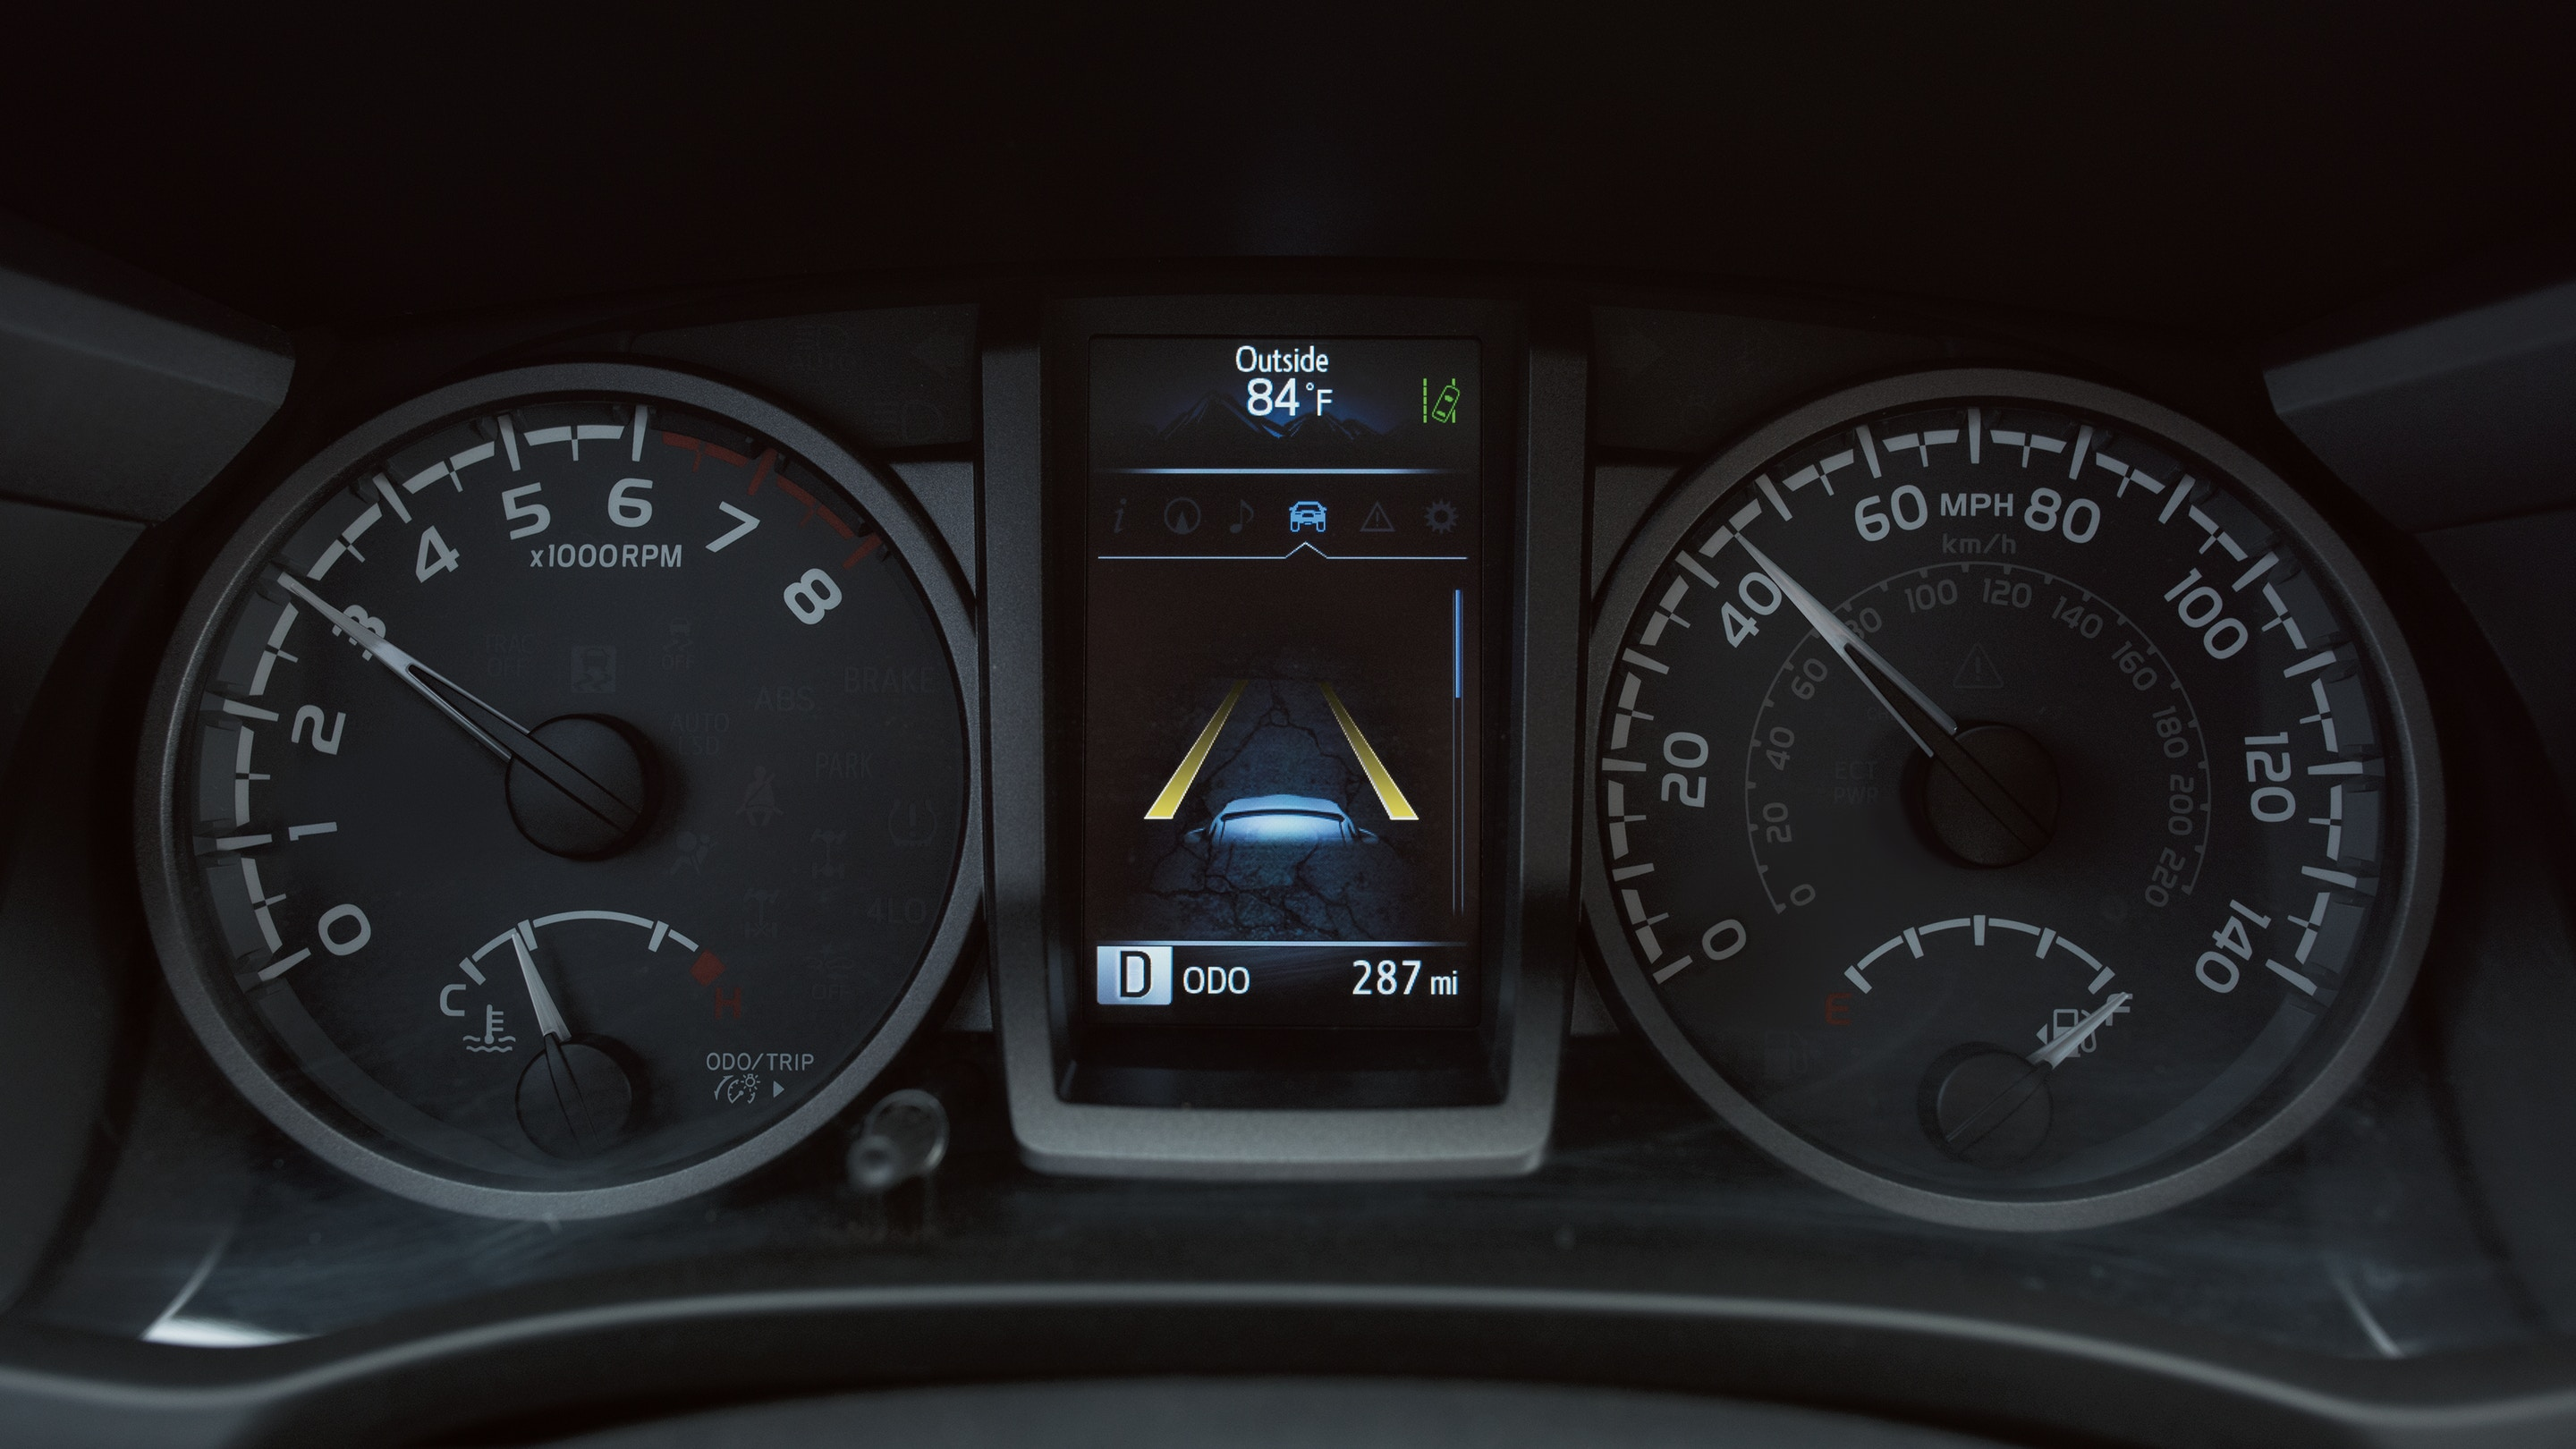 Instrument Panel in the 2019 Tacoma